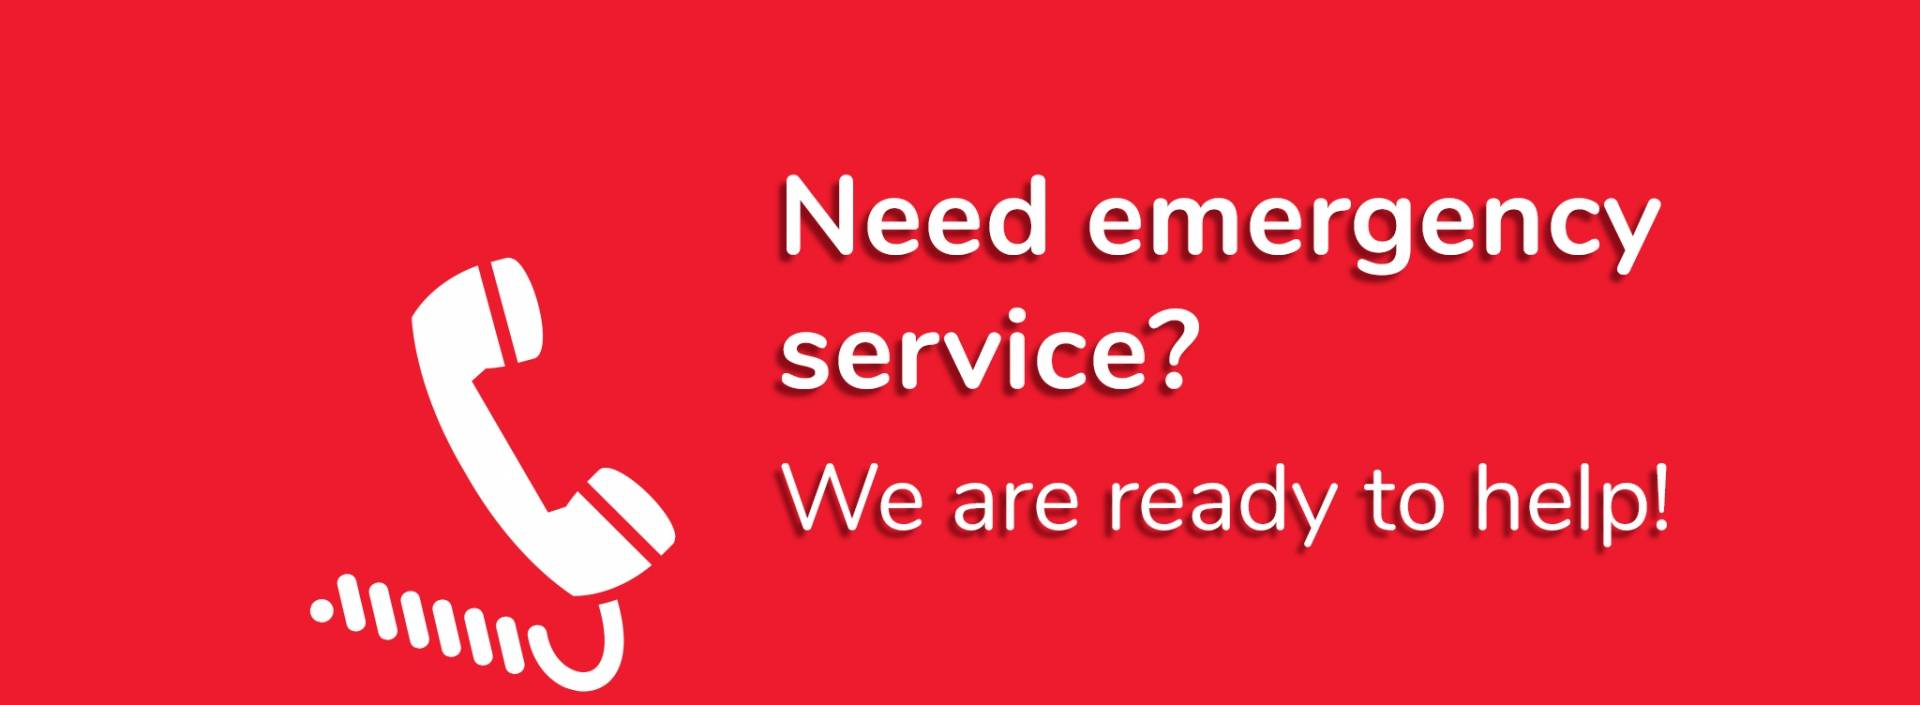 Need emergency service ? We are ready to help!